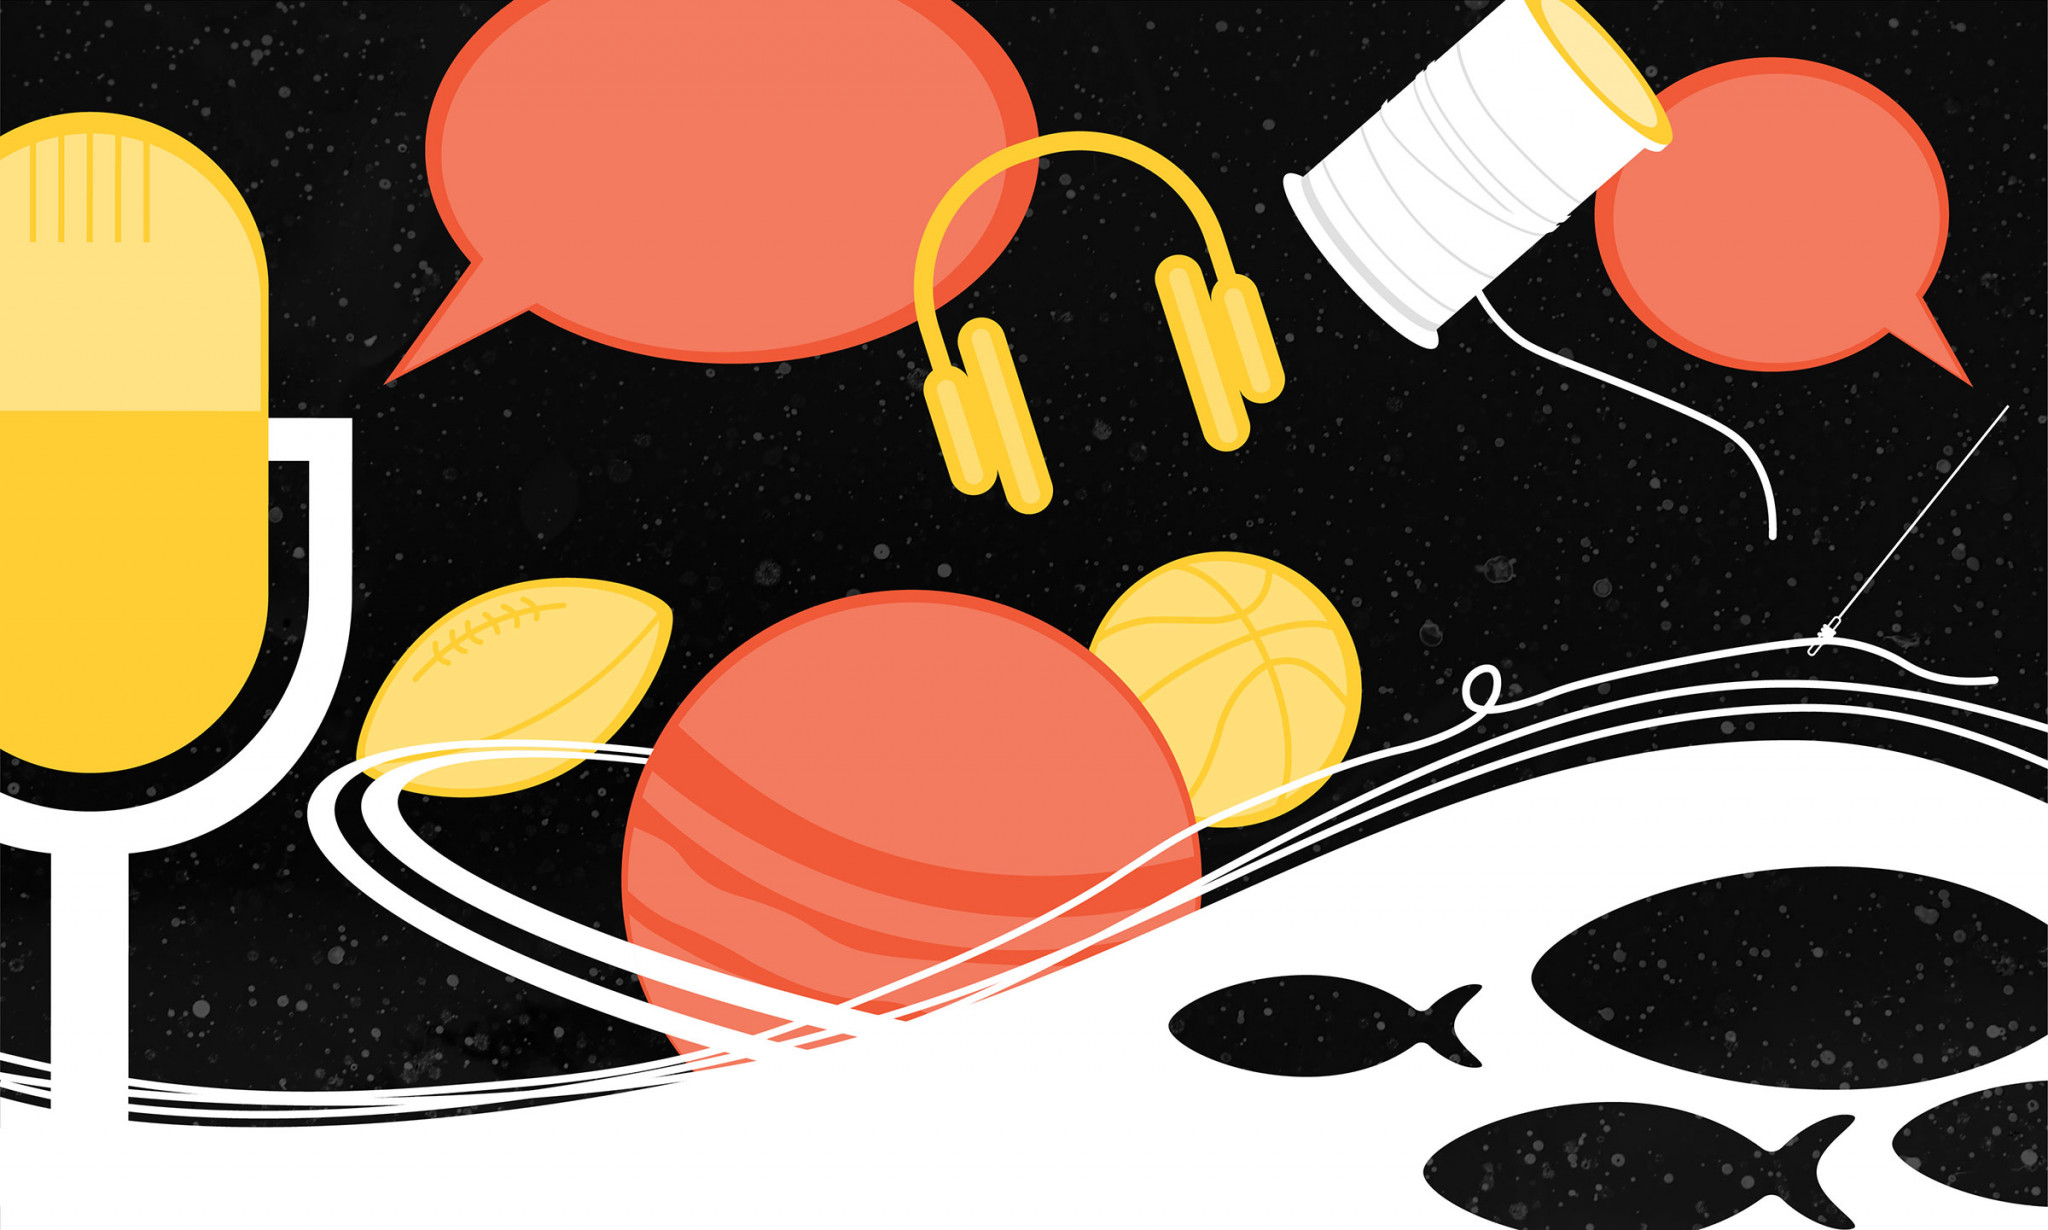 Illustration of a microphone, planets, and fish